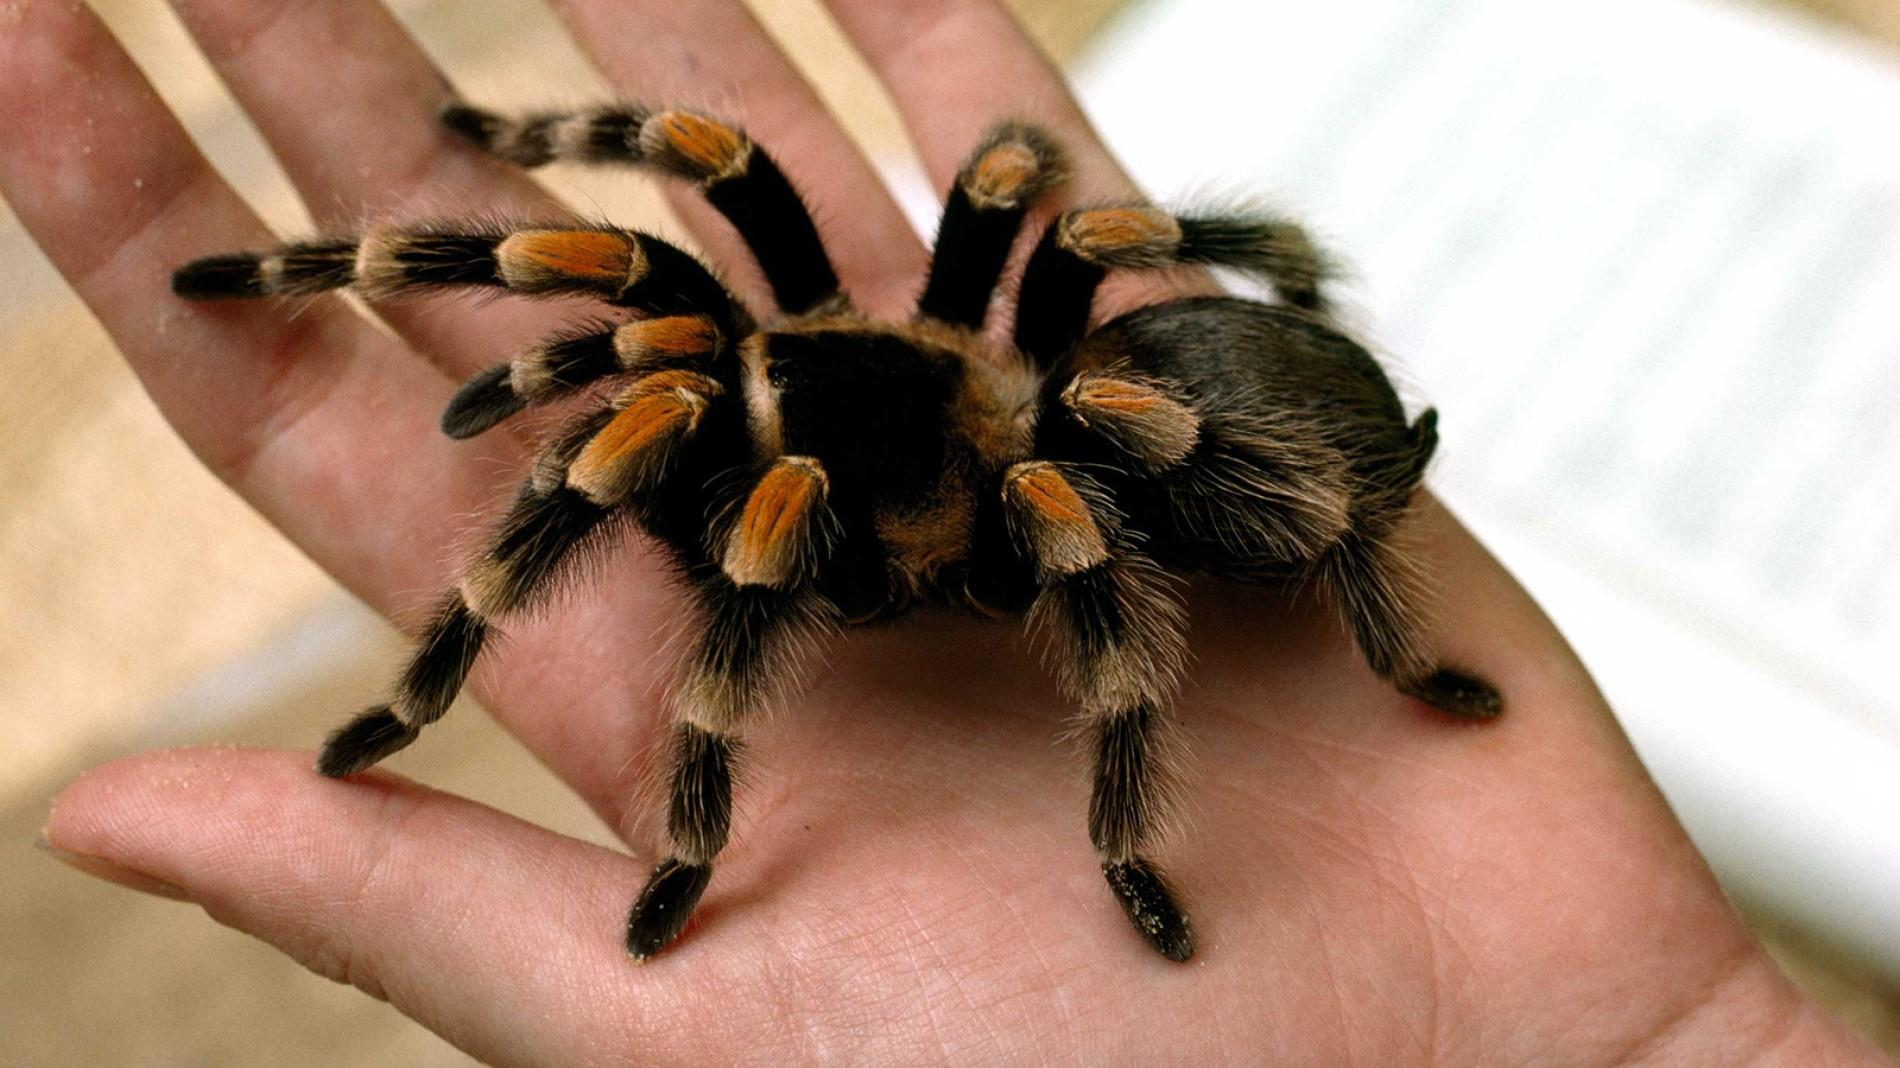 tarantula-closeup-hand.ngsversion.1396530853891.adapt.1900.1.jpg